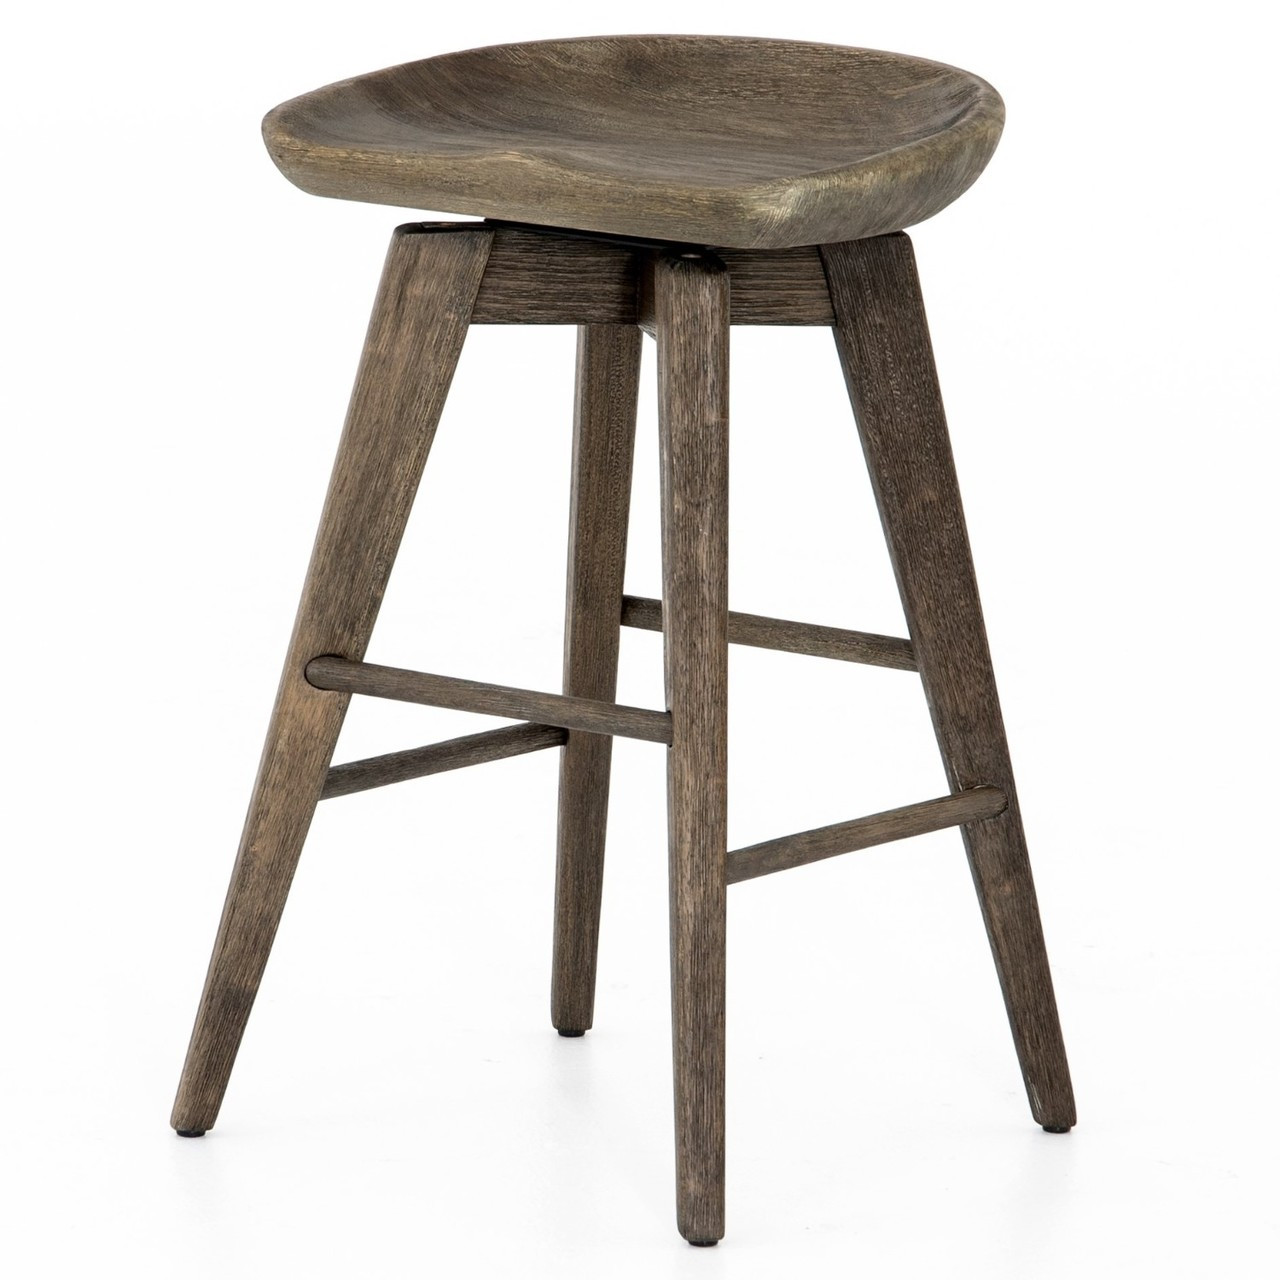 separation shoes 09e8e 0e6b9 Paramore Modern Swivel Counter Stool